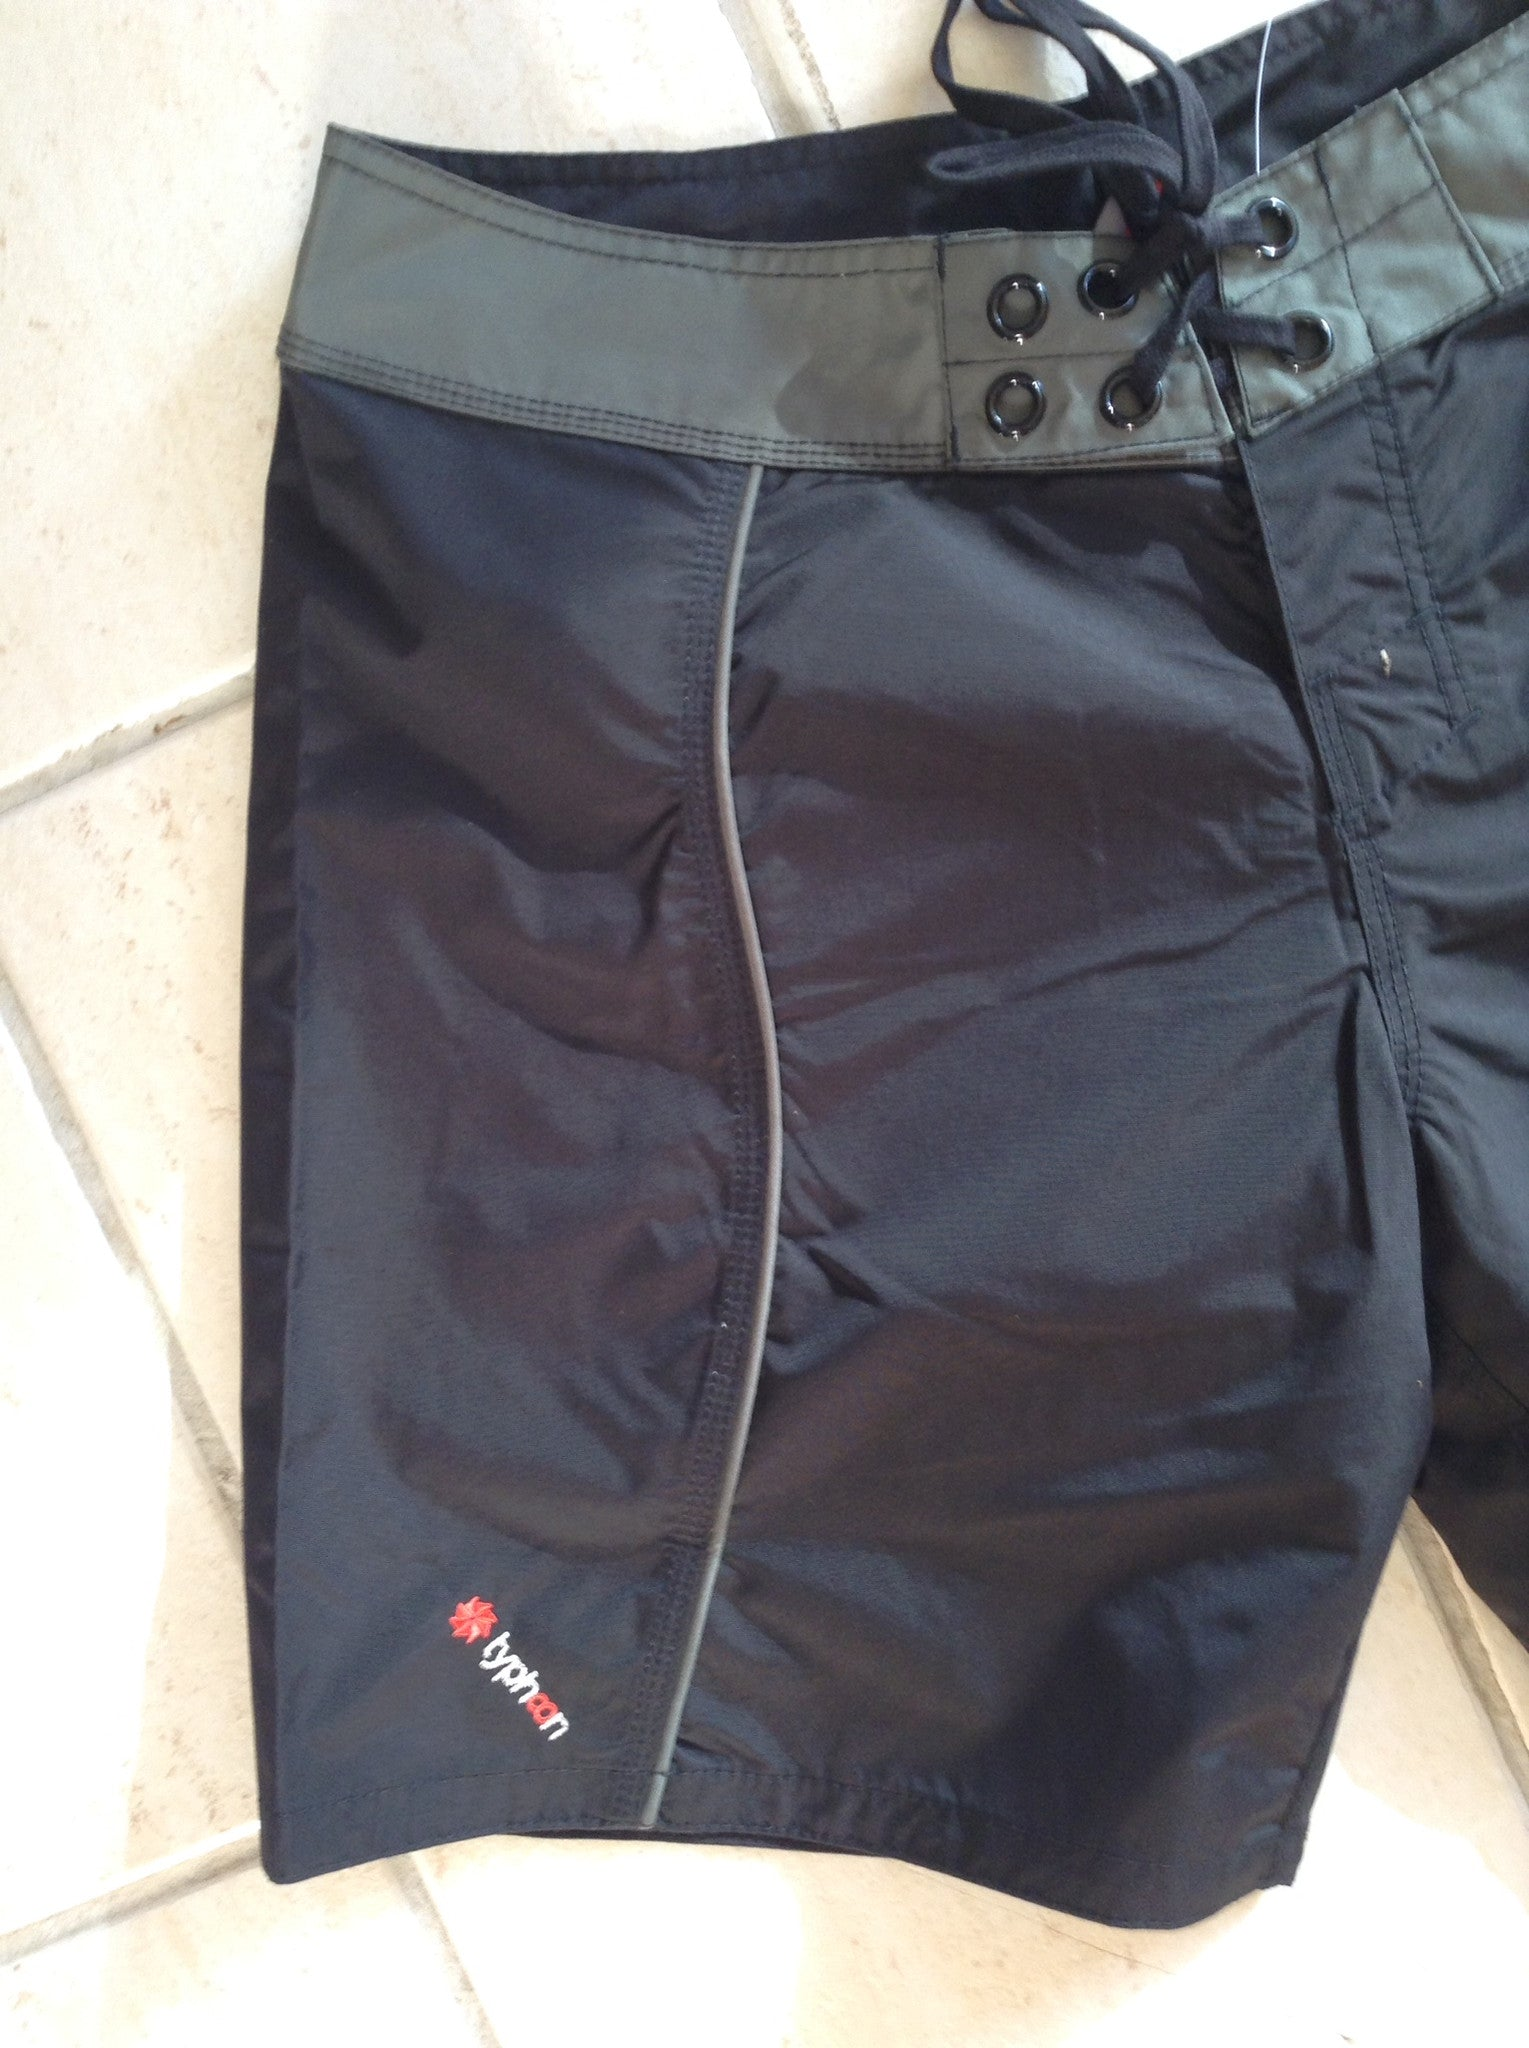 "Typhoon8 Padded Unisex Paddle Shorts (8"" Shorts)"